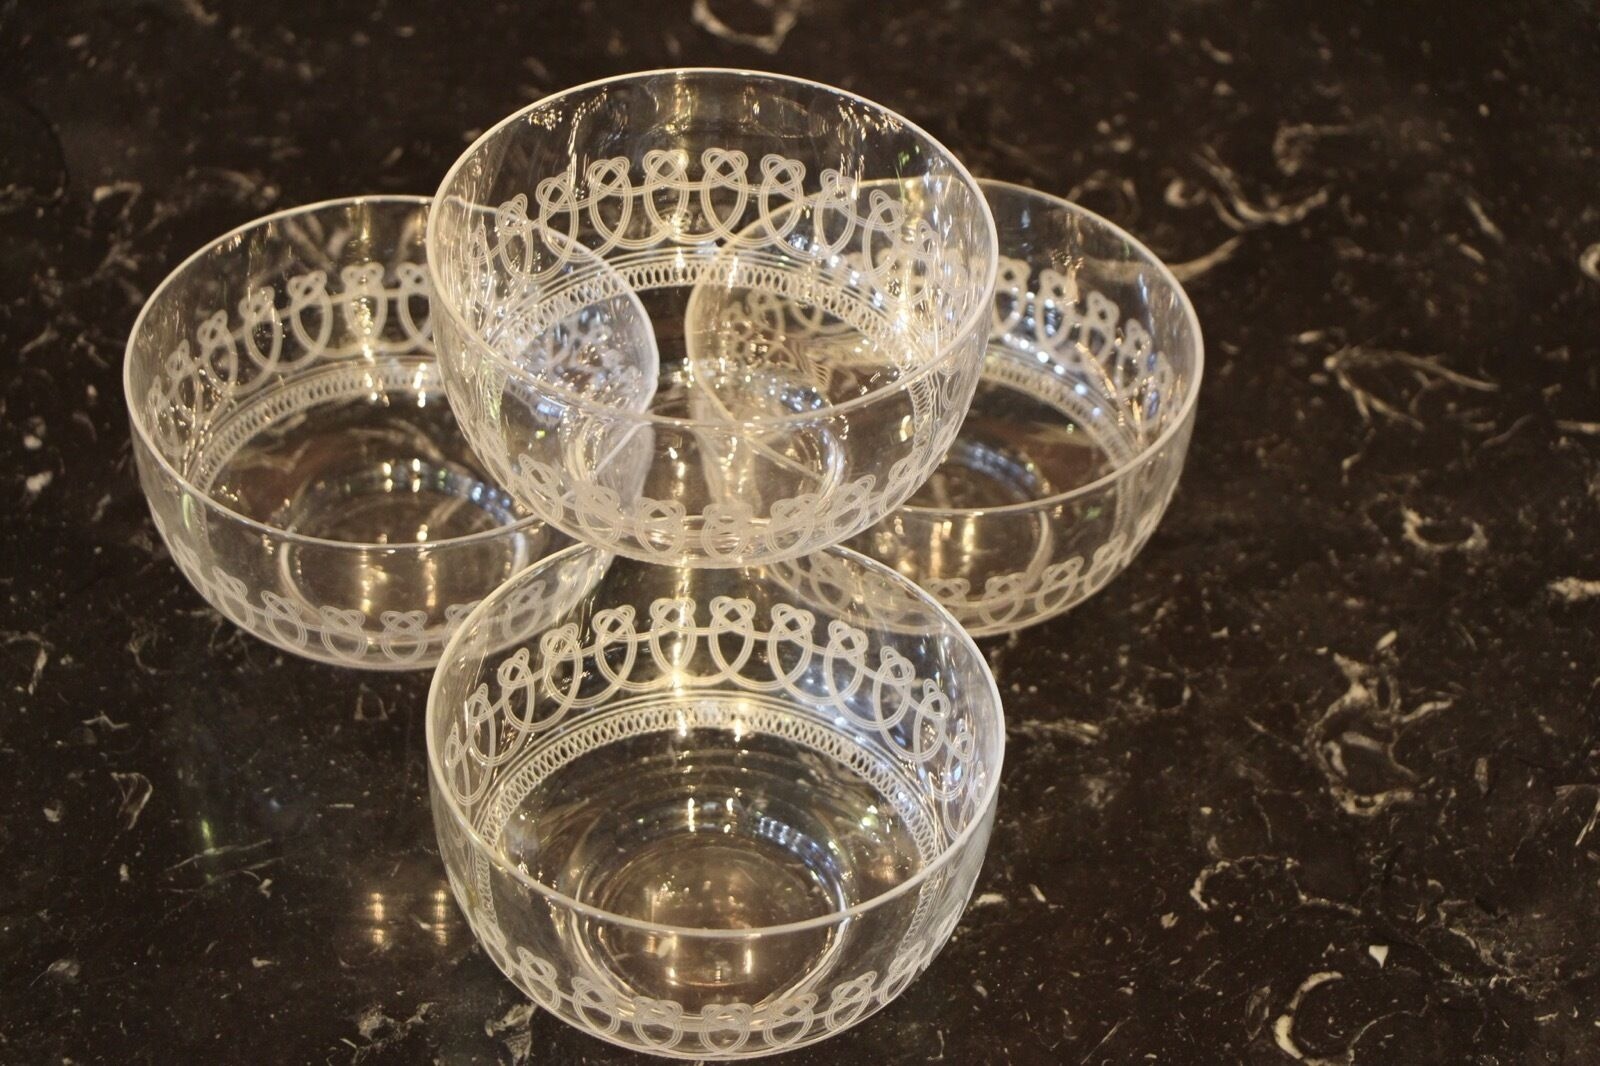 4 antique pall mall engraved crystal large desert bowls dishes English Art Deco